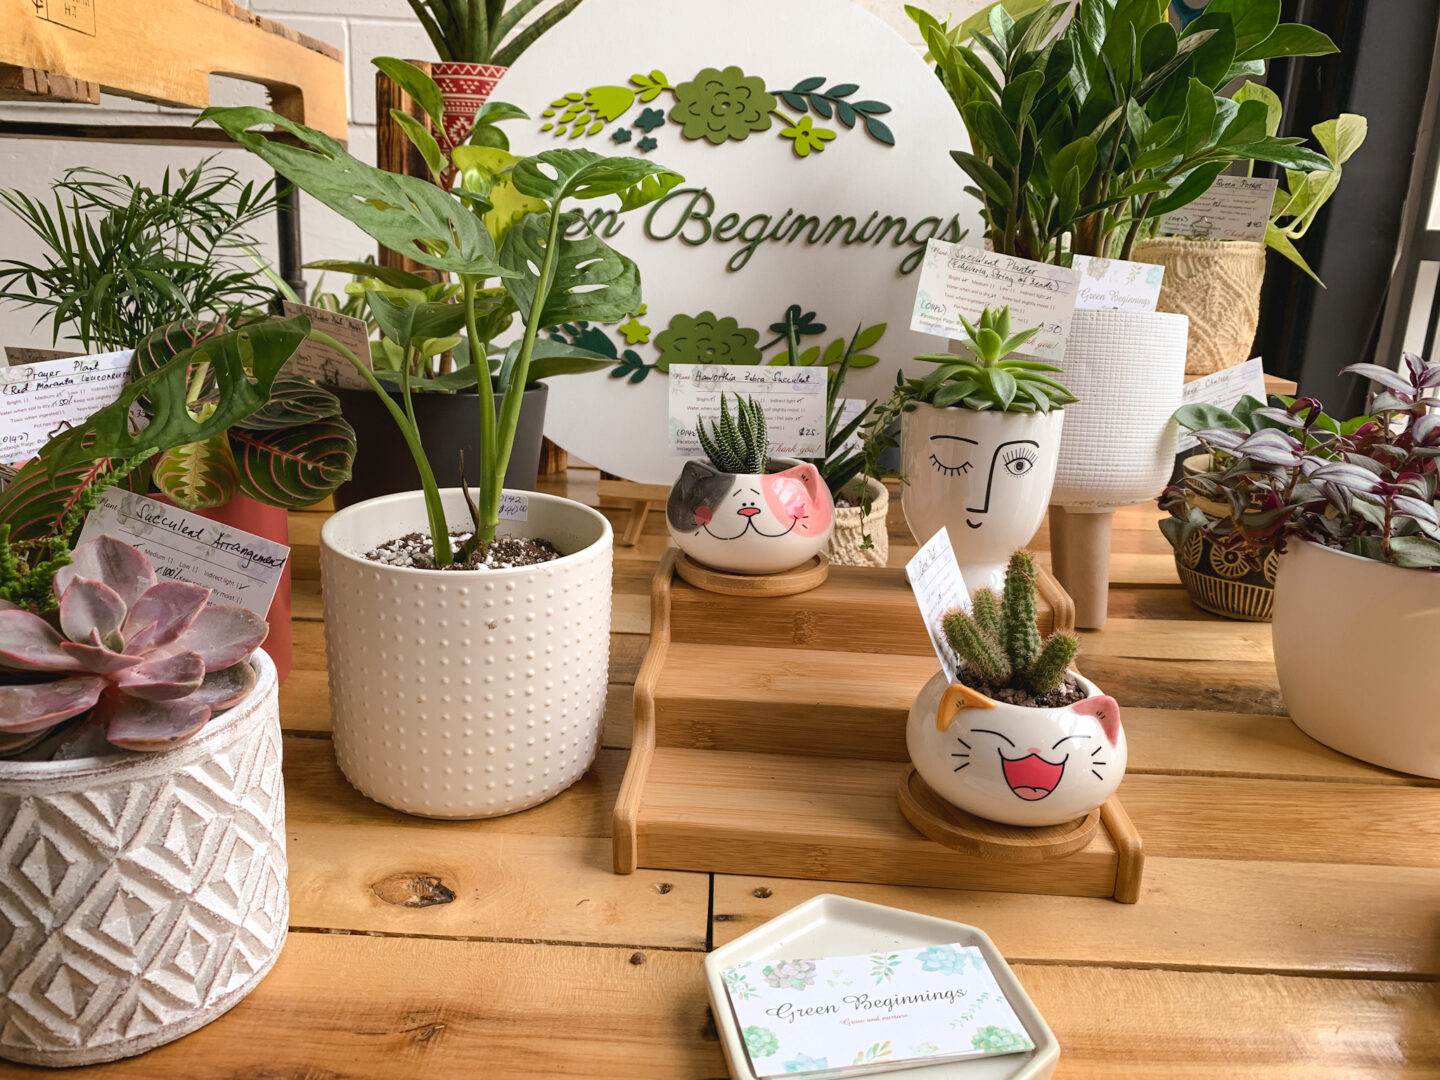 Green Beginnings at Markets by Dream Day in Bowmanville, Ontario